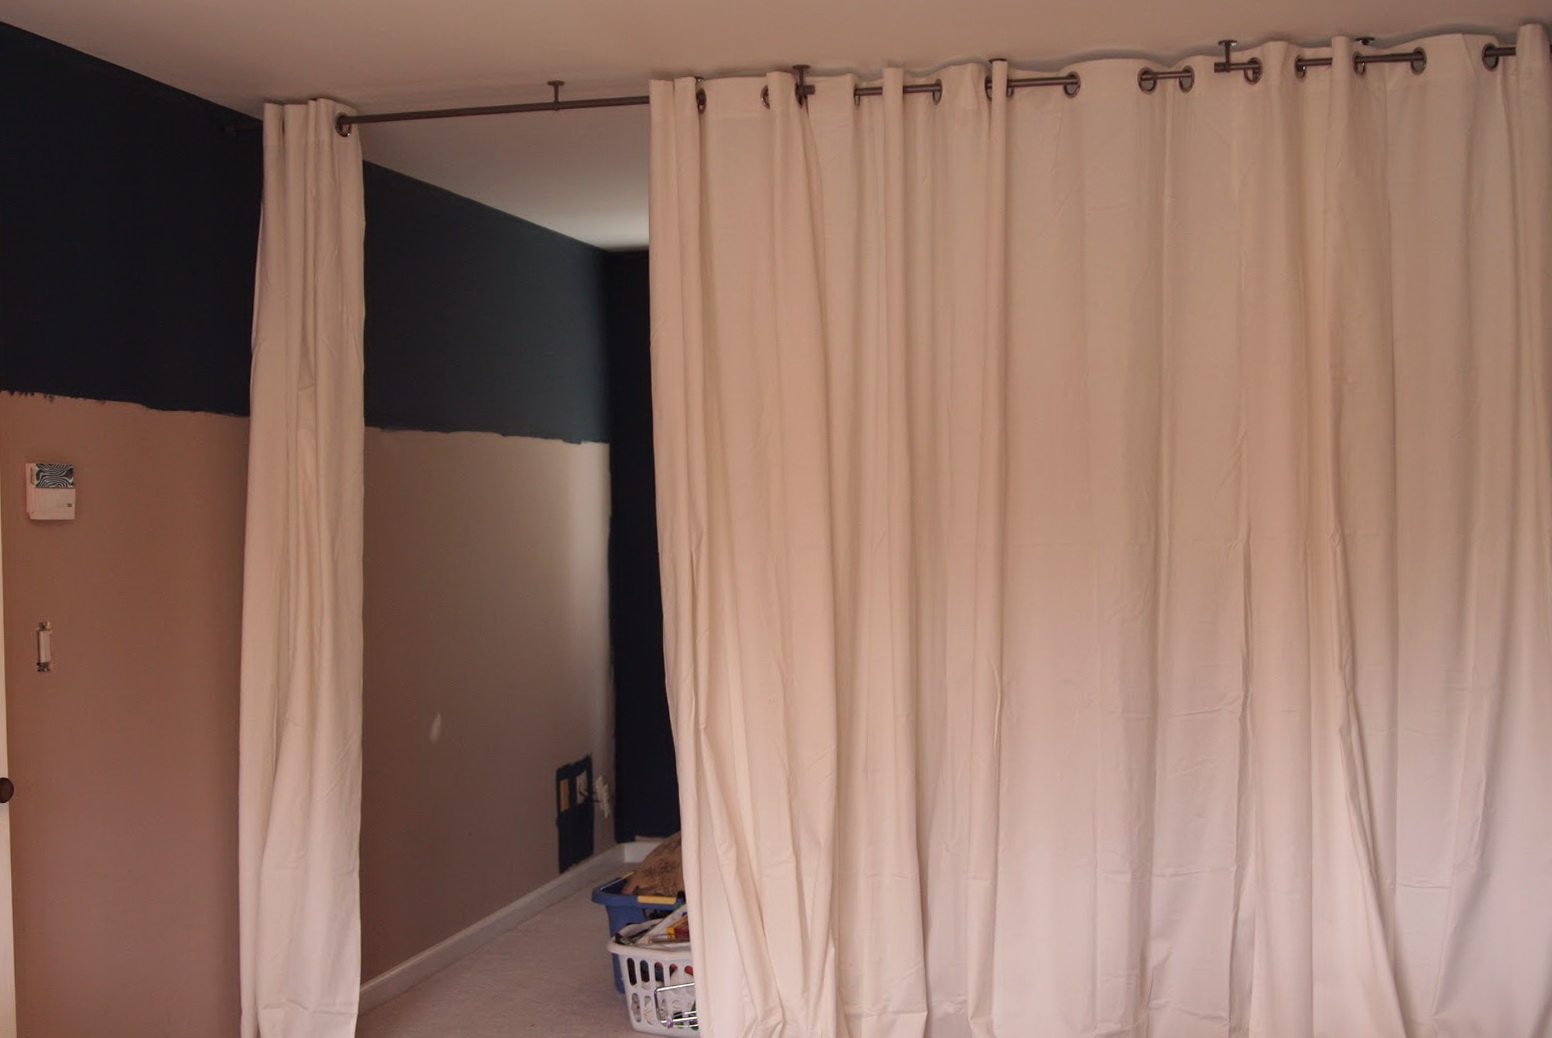 Decorating Ikea Panelurtain Hackurtains Inch Ideas Inspiration Within Room Curtain Divider IKEA (Image 5 of 25)